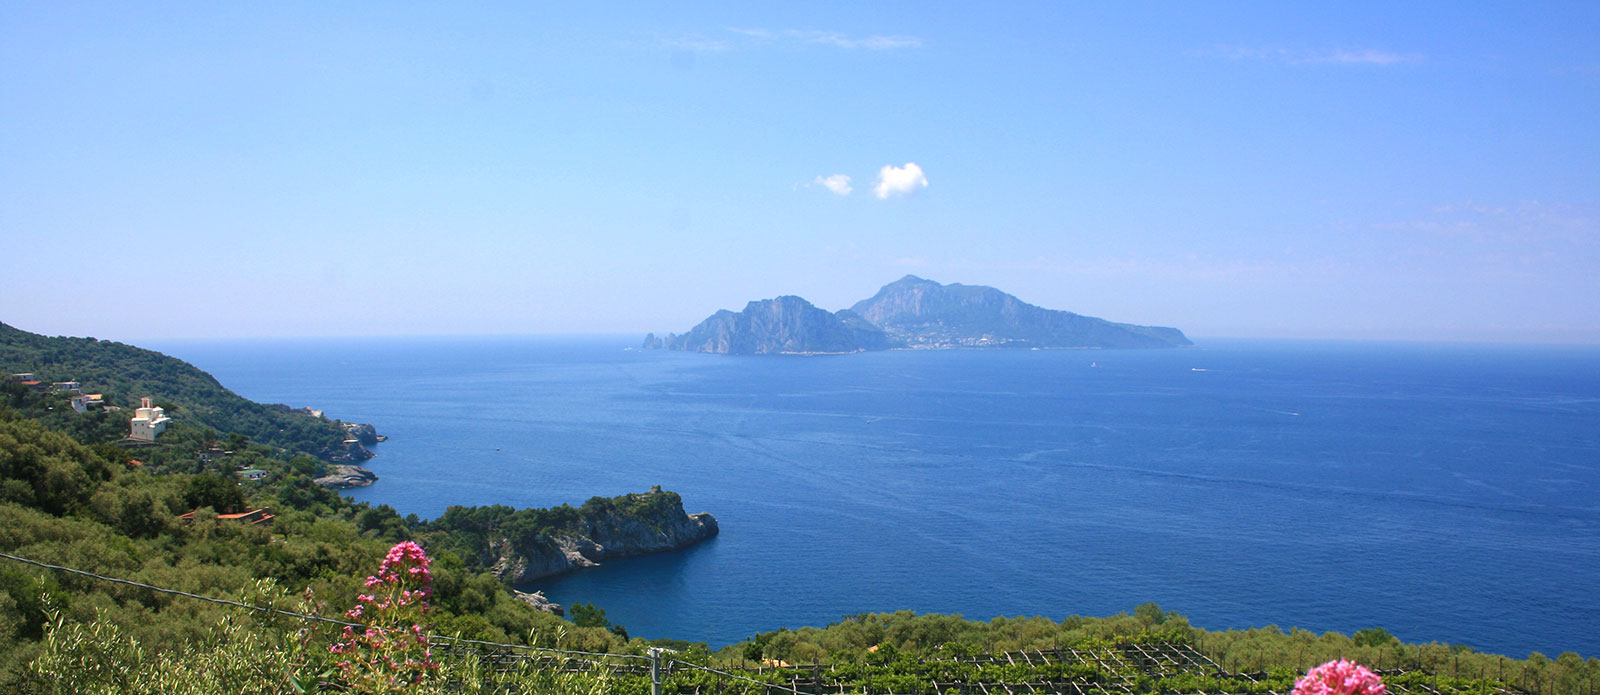 Tour di Capri in barca